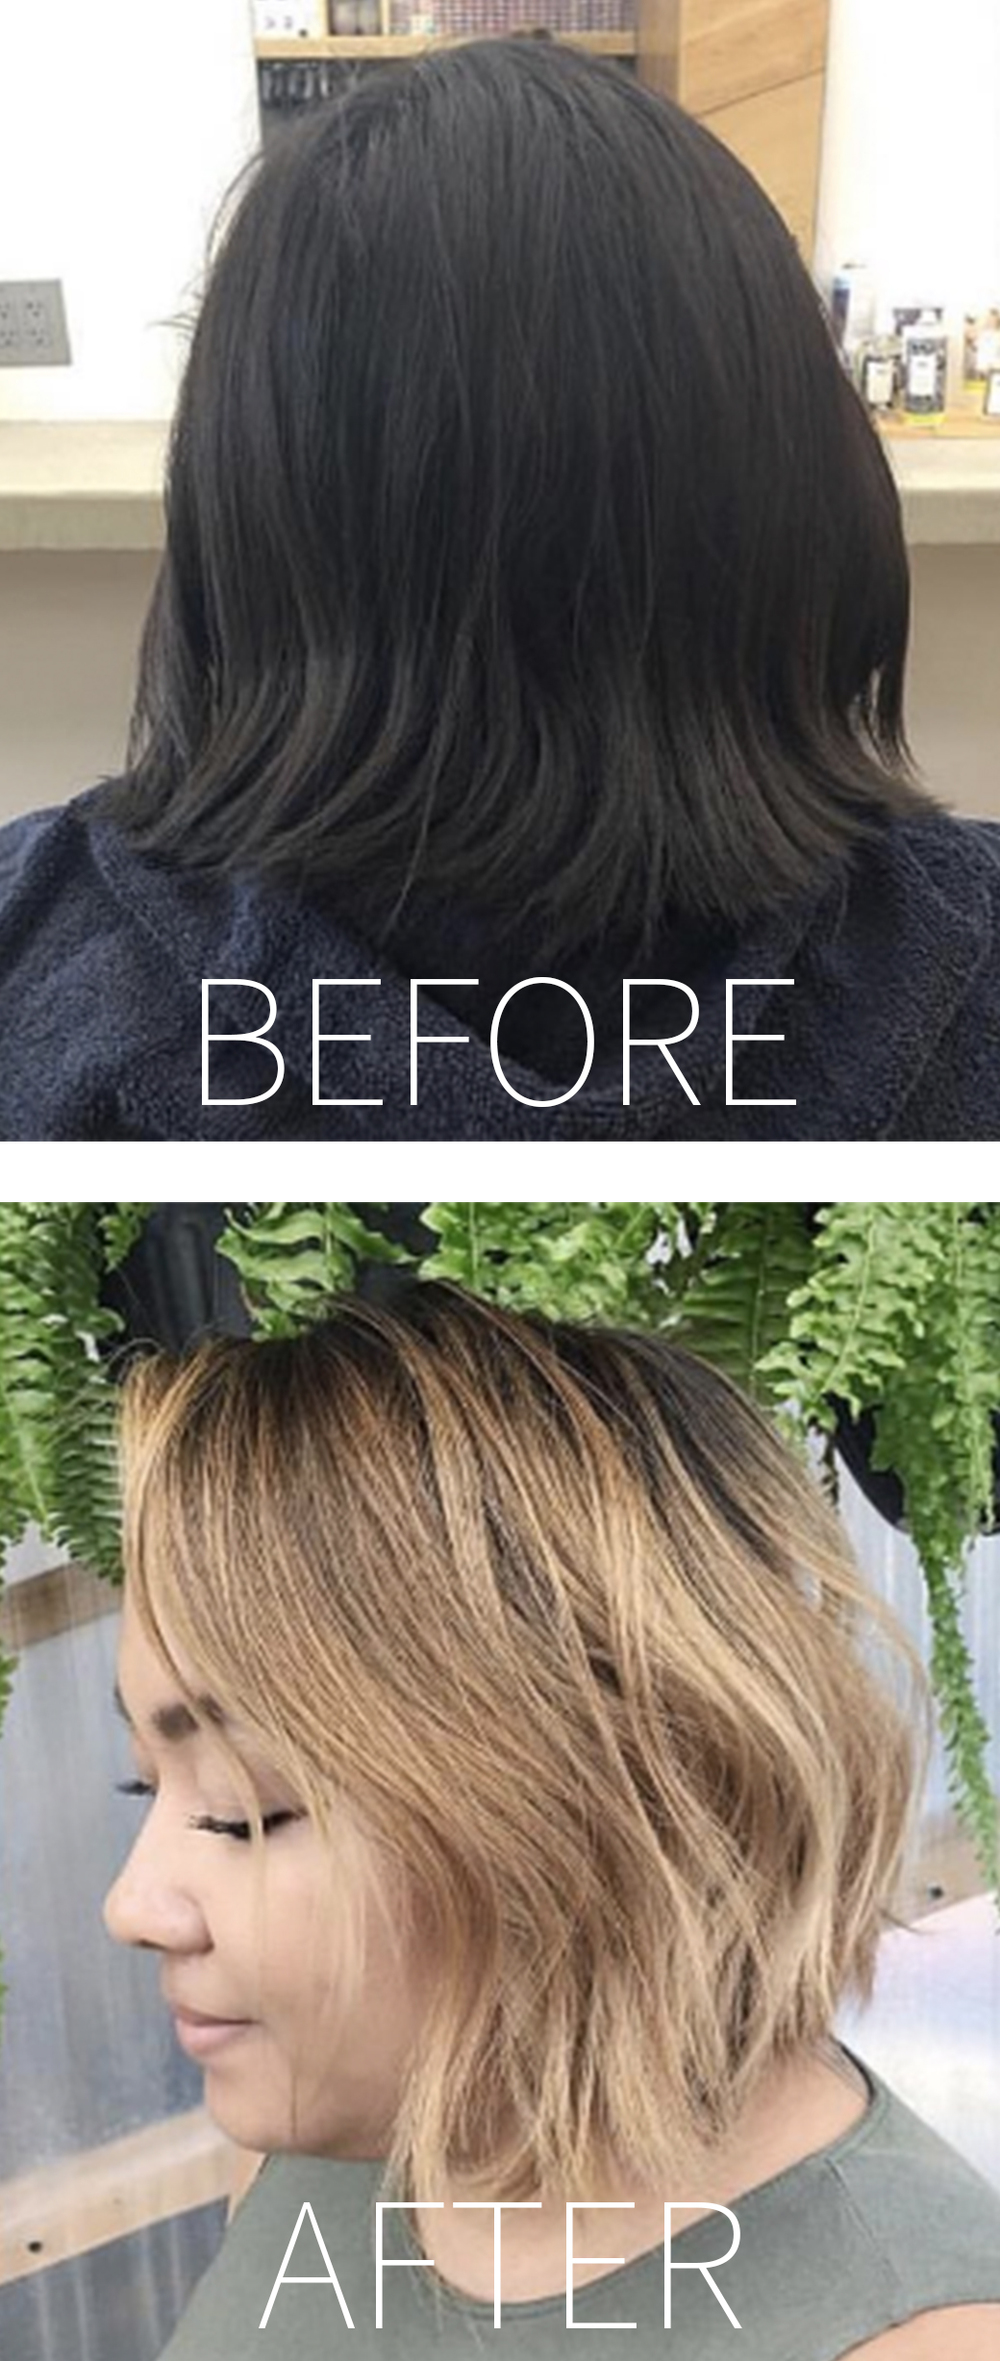 I've been getting a ton of questions about taking my hair from brunette to blonde. If you have virgin brunette hair and you're thinking about going lighter, here are 4 tips I used before going on my hair journey. Photos by @maxine_hmb. Click to read more!